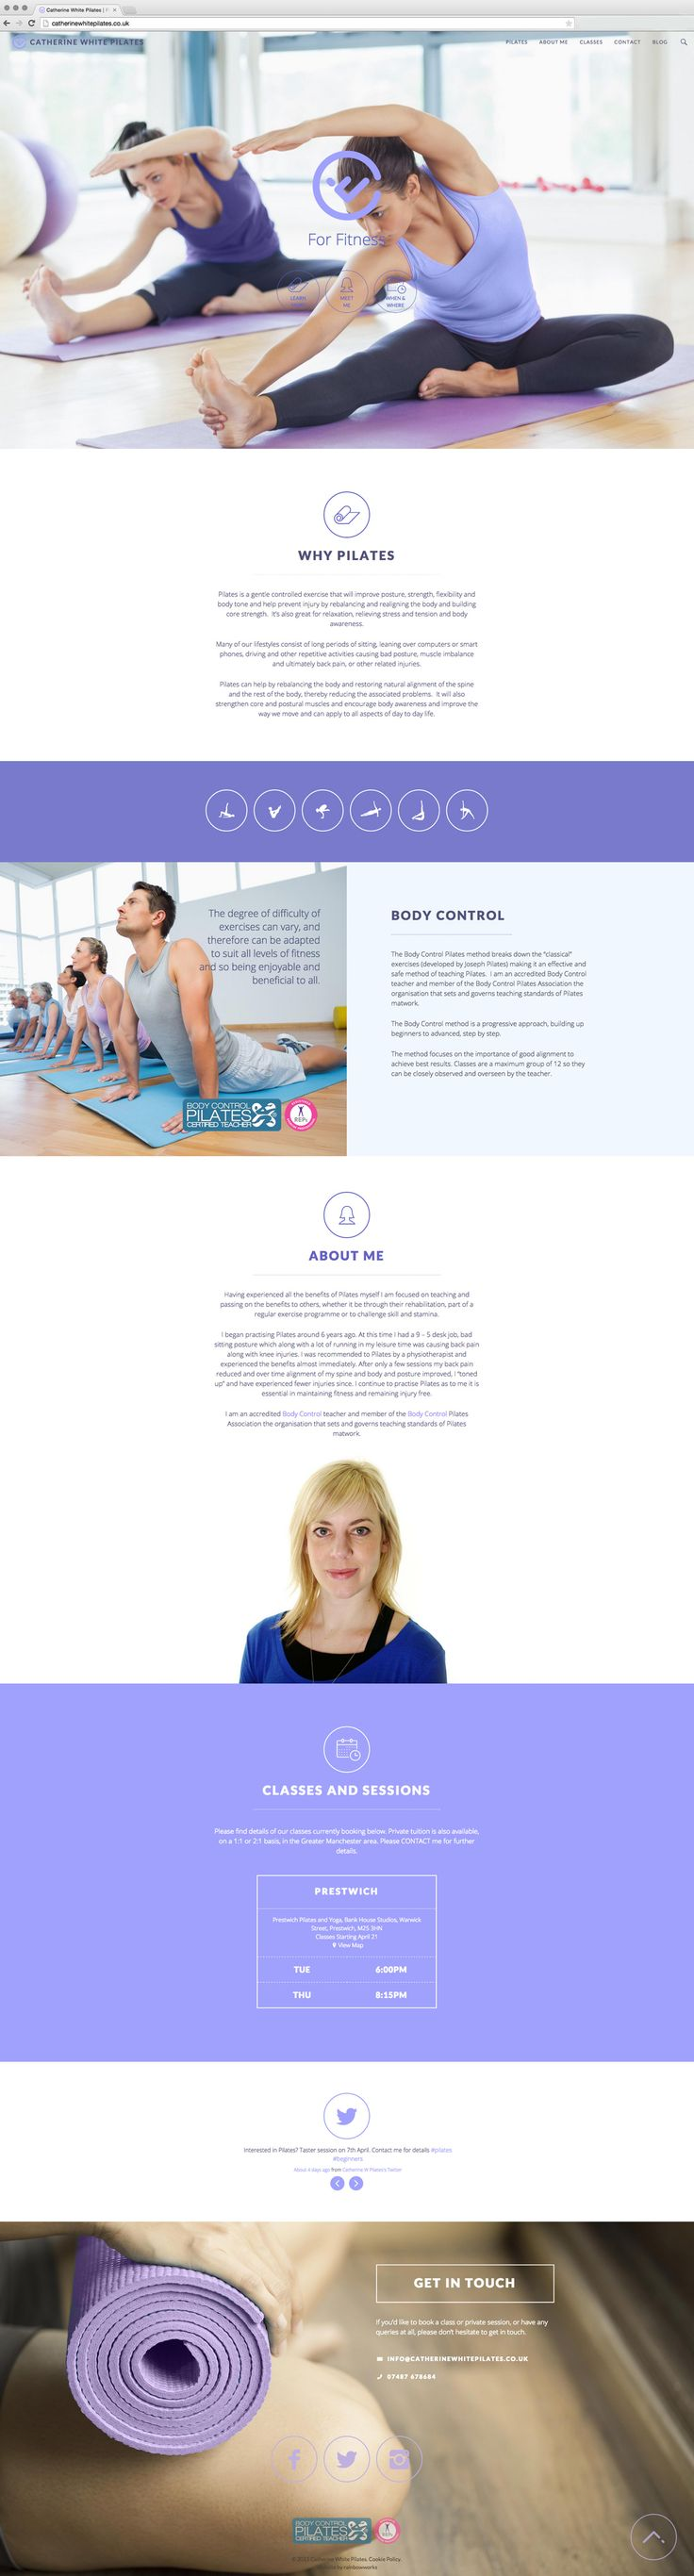 #Pilates One Page Website Design with Blog - by http://rainbowworks.co.uk